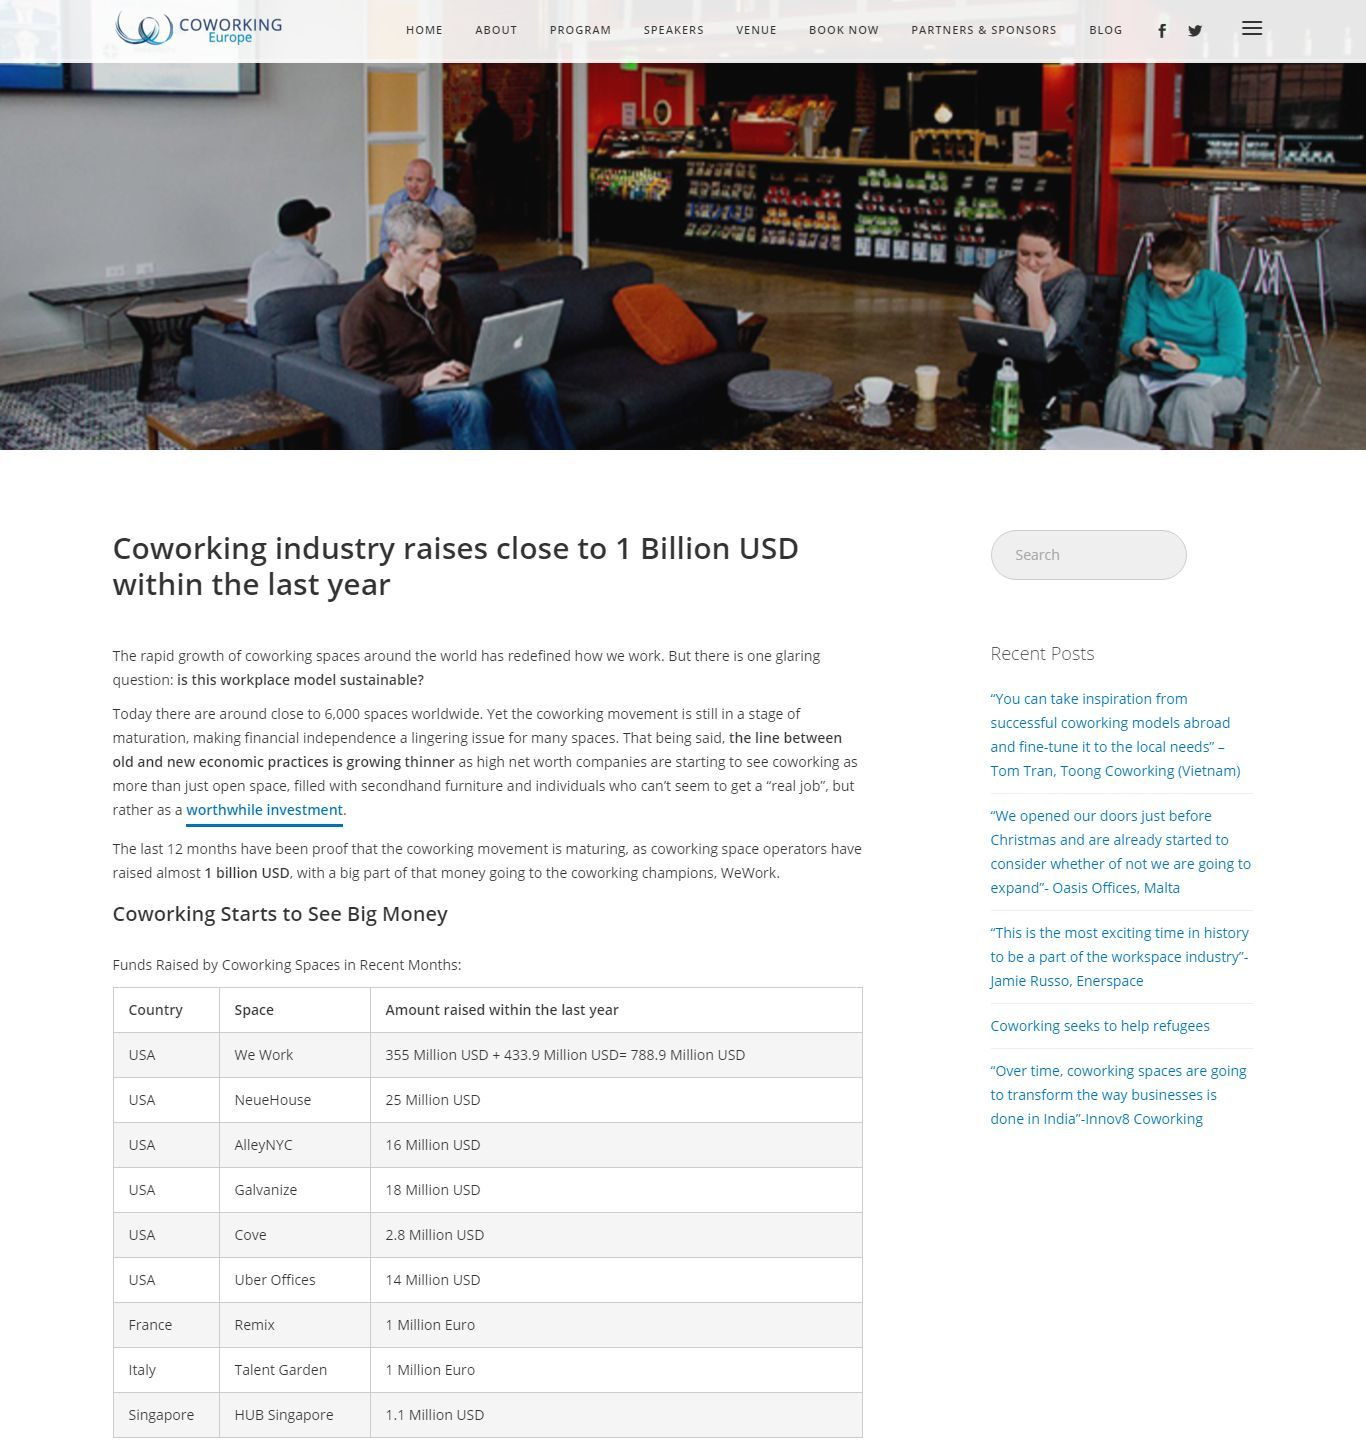 Pdf: Coworking industry raises close to 1 Billion USD within the last year - Stonehard